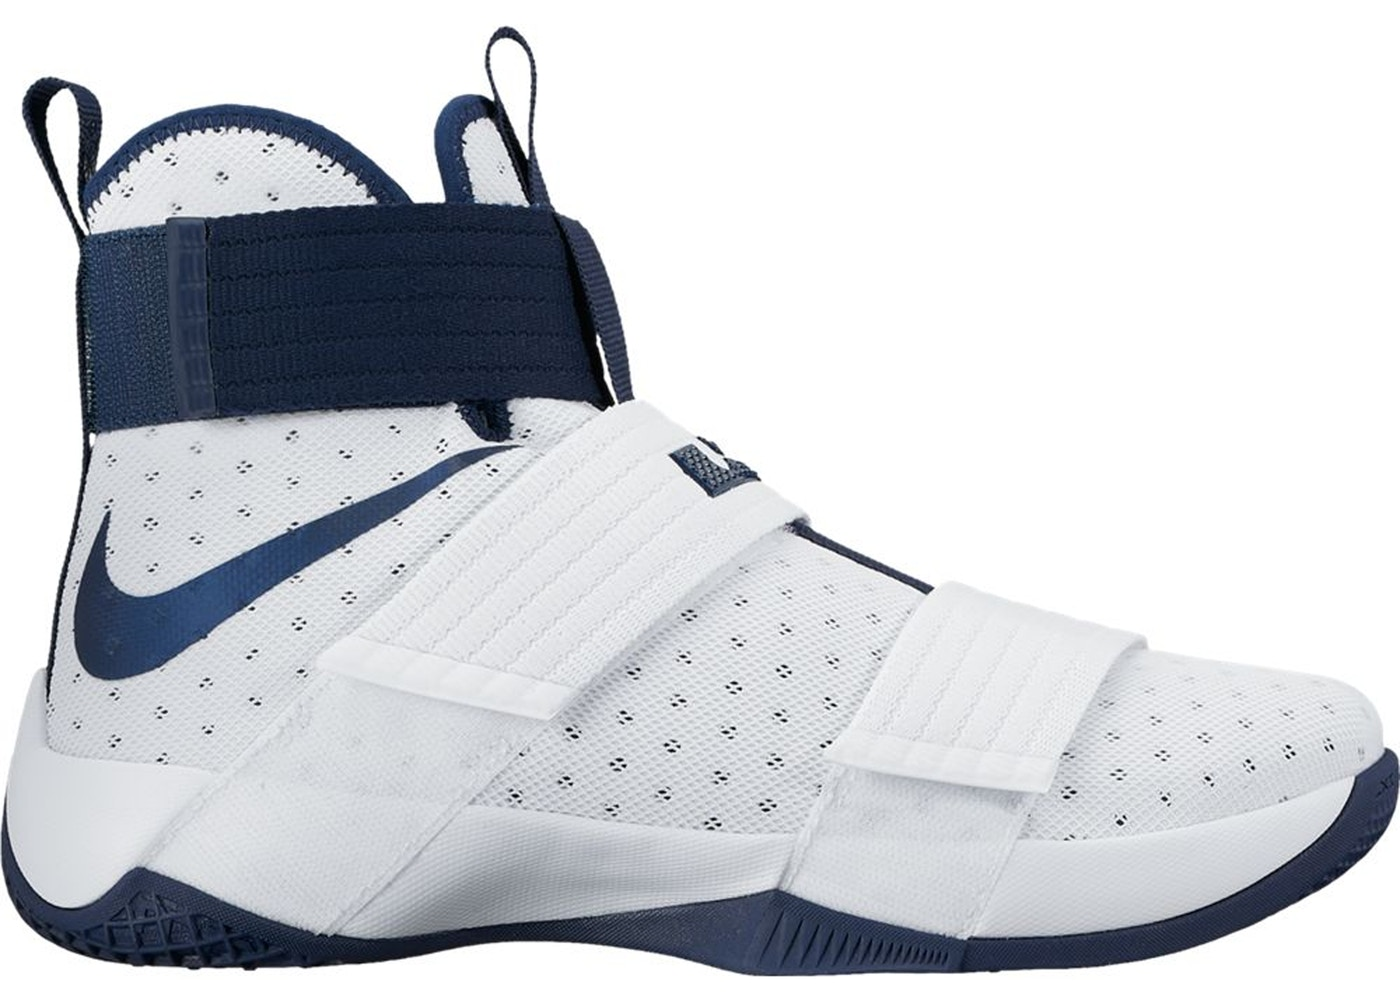 super popular b2ec4 6652e Sell. or Ask. Size 9. View All Bids. LeBron Zoom Soldier 10 White ...